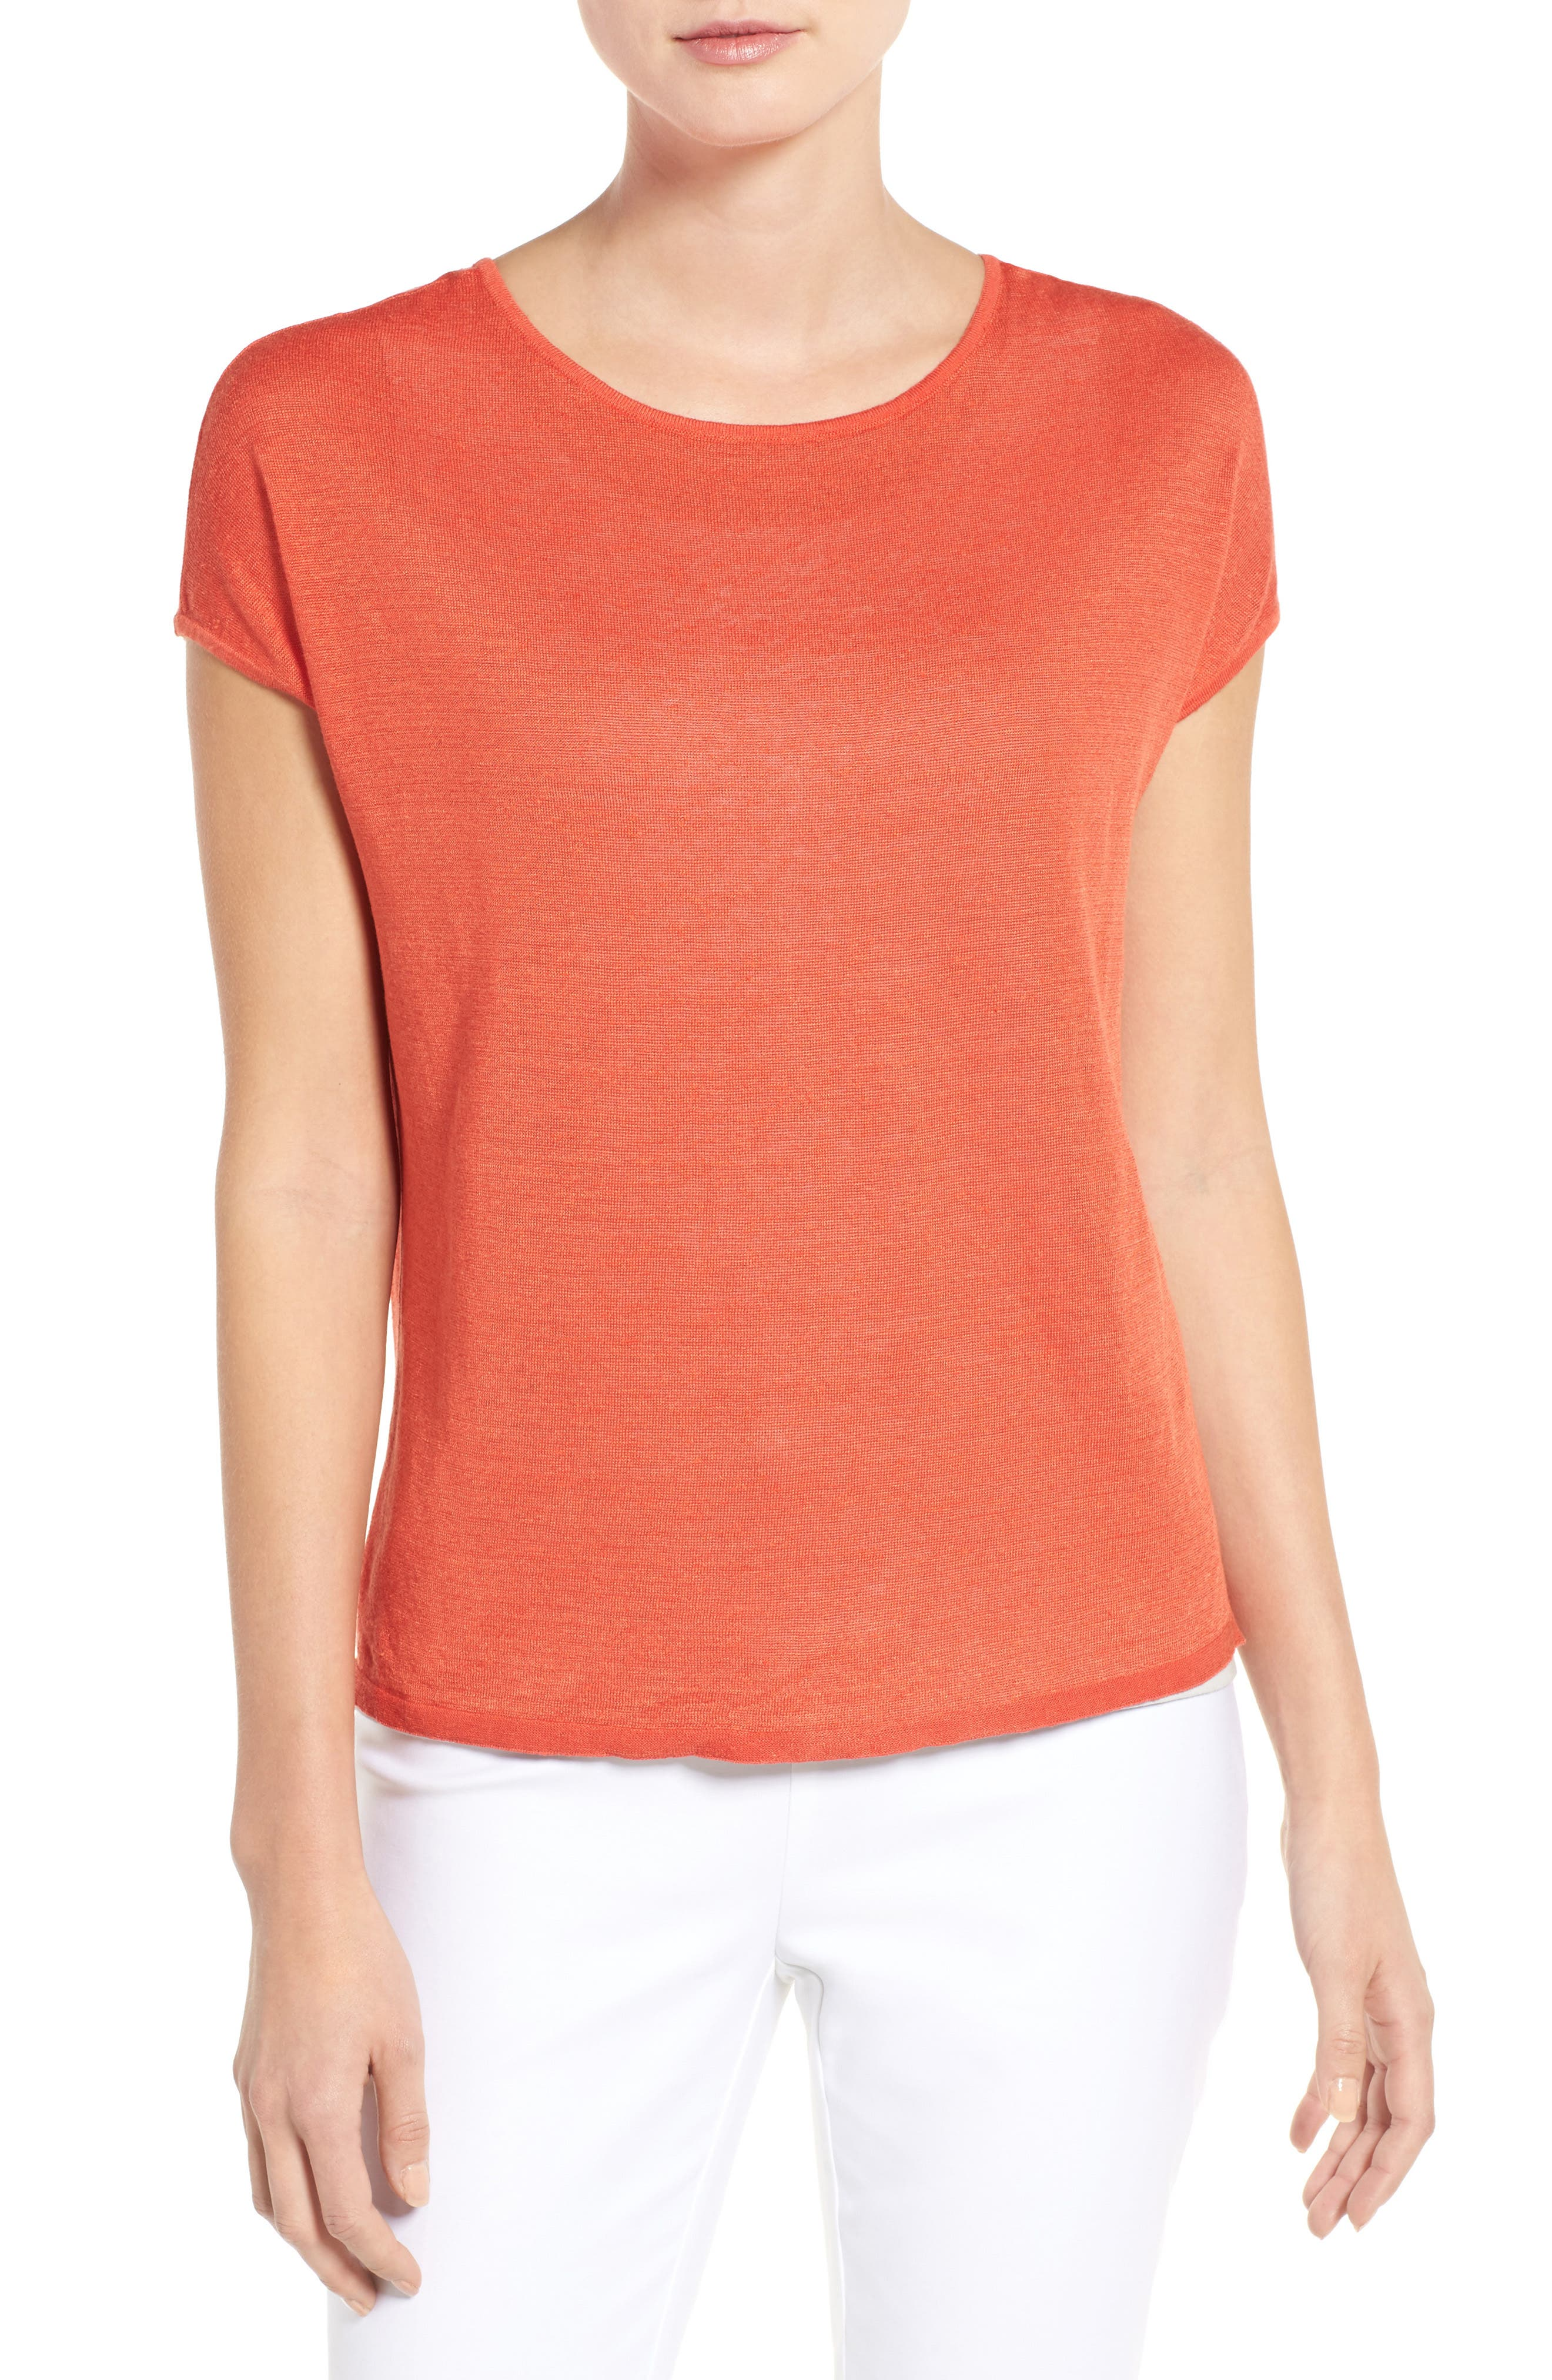 NIC+ZOE Everyday Tissue Weight Tee (Regular & Petite)